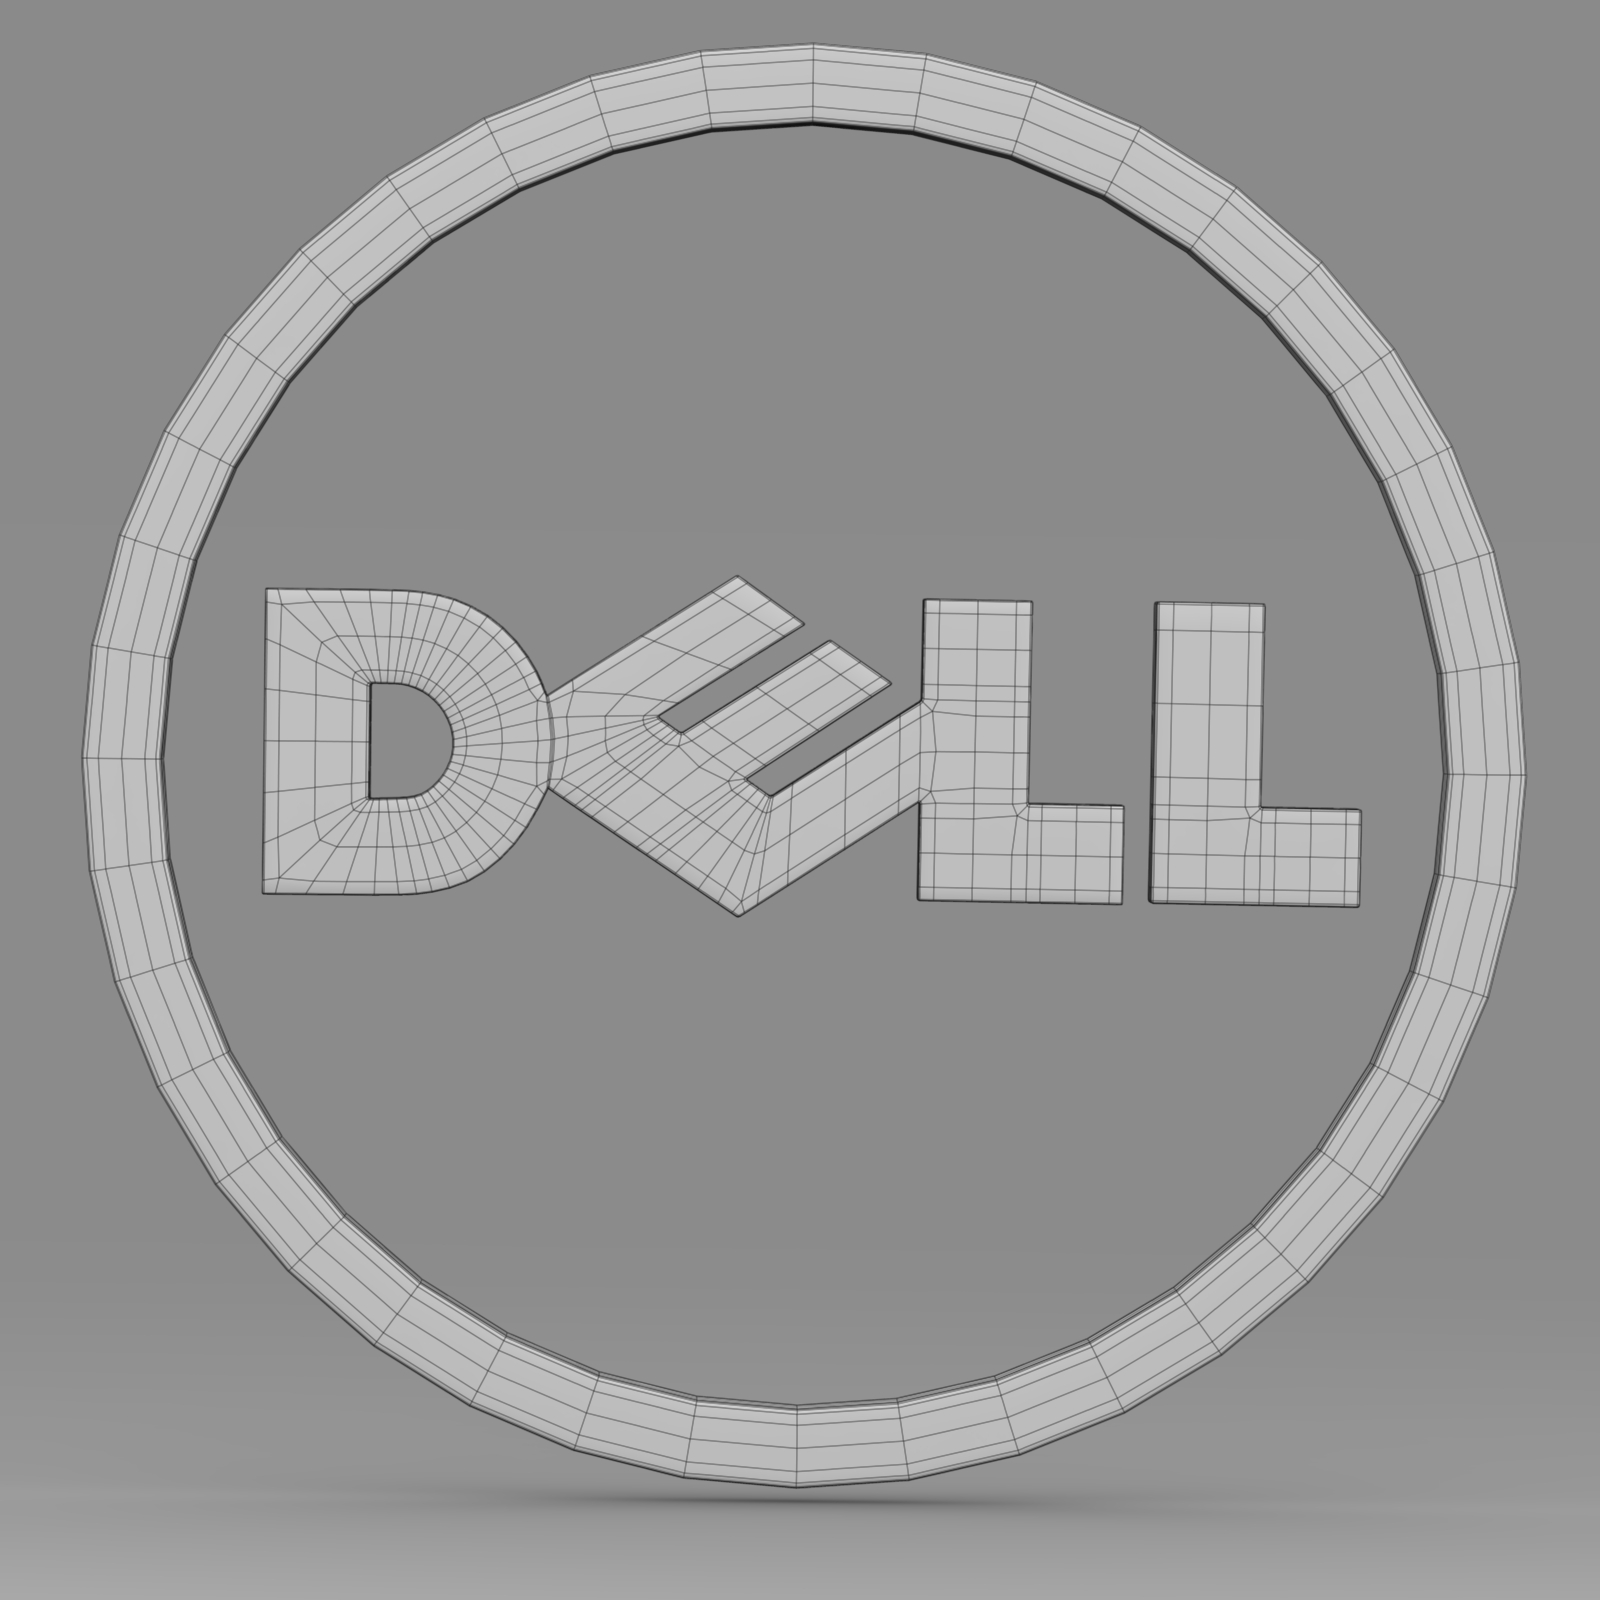 dell logo 2 3d model 3ds fbx c4d lwo ma mb hrc xsi  obj 223630